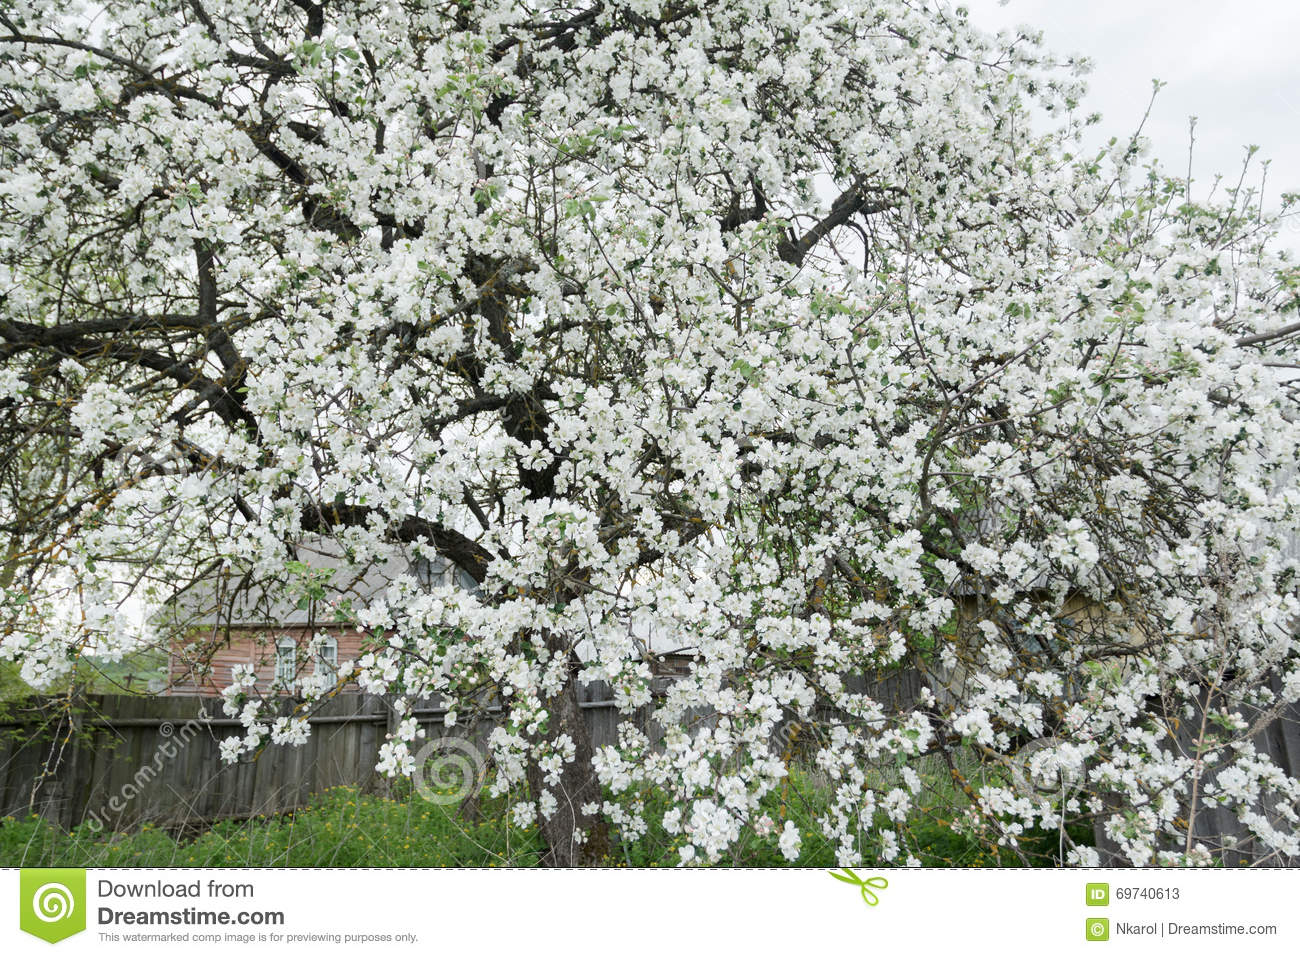 Flowering Apple Tree In Spring Garden Covering With Snowy White